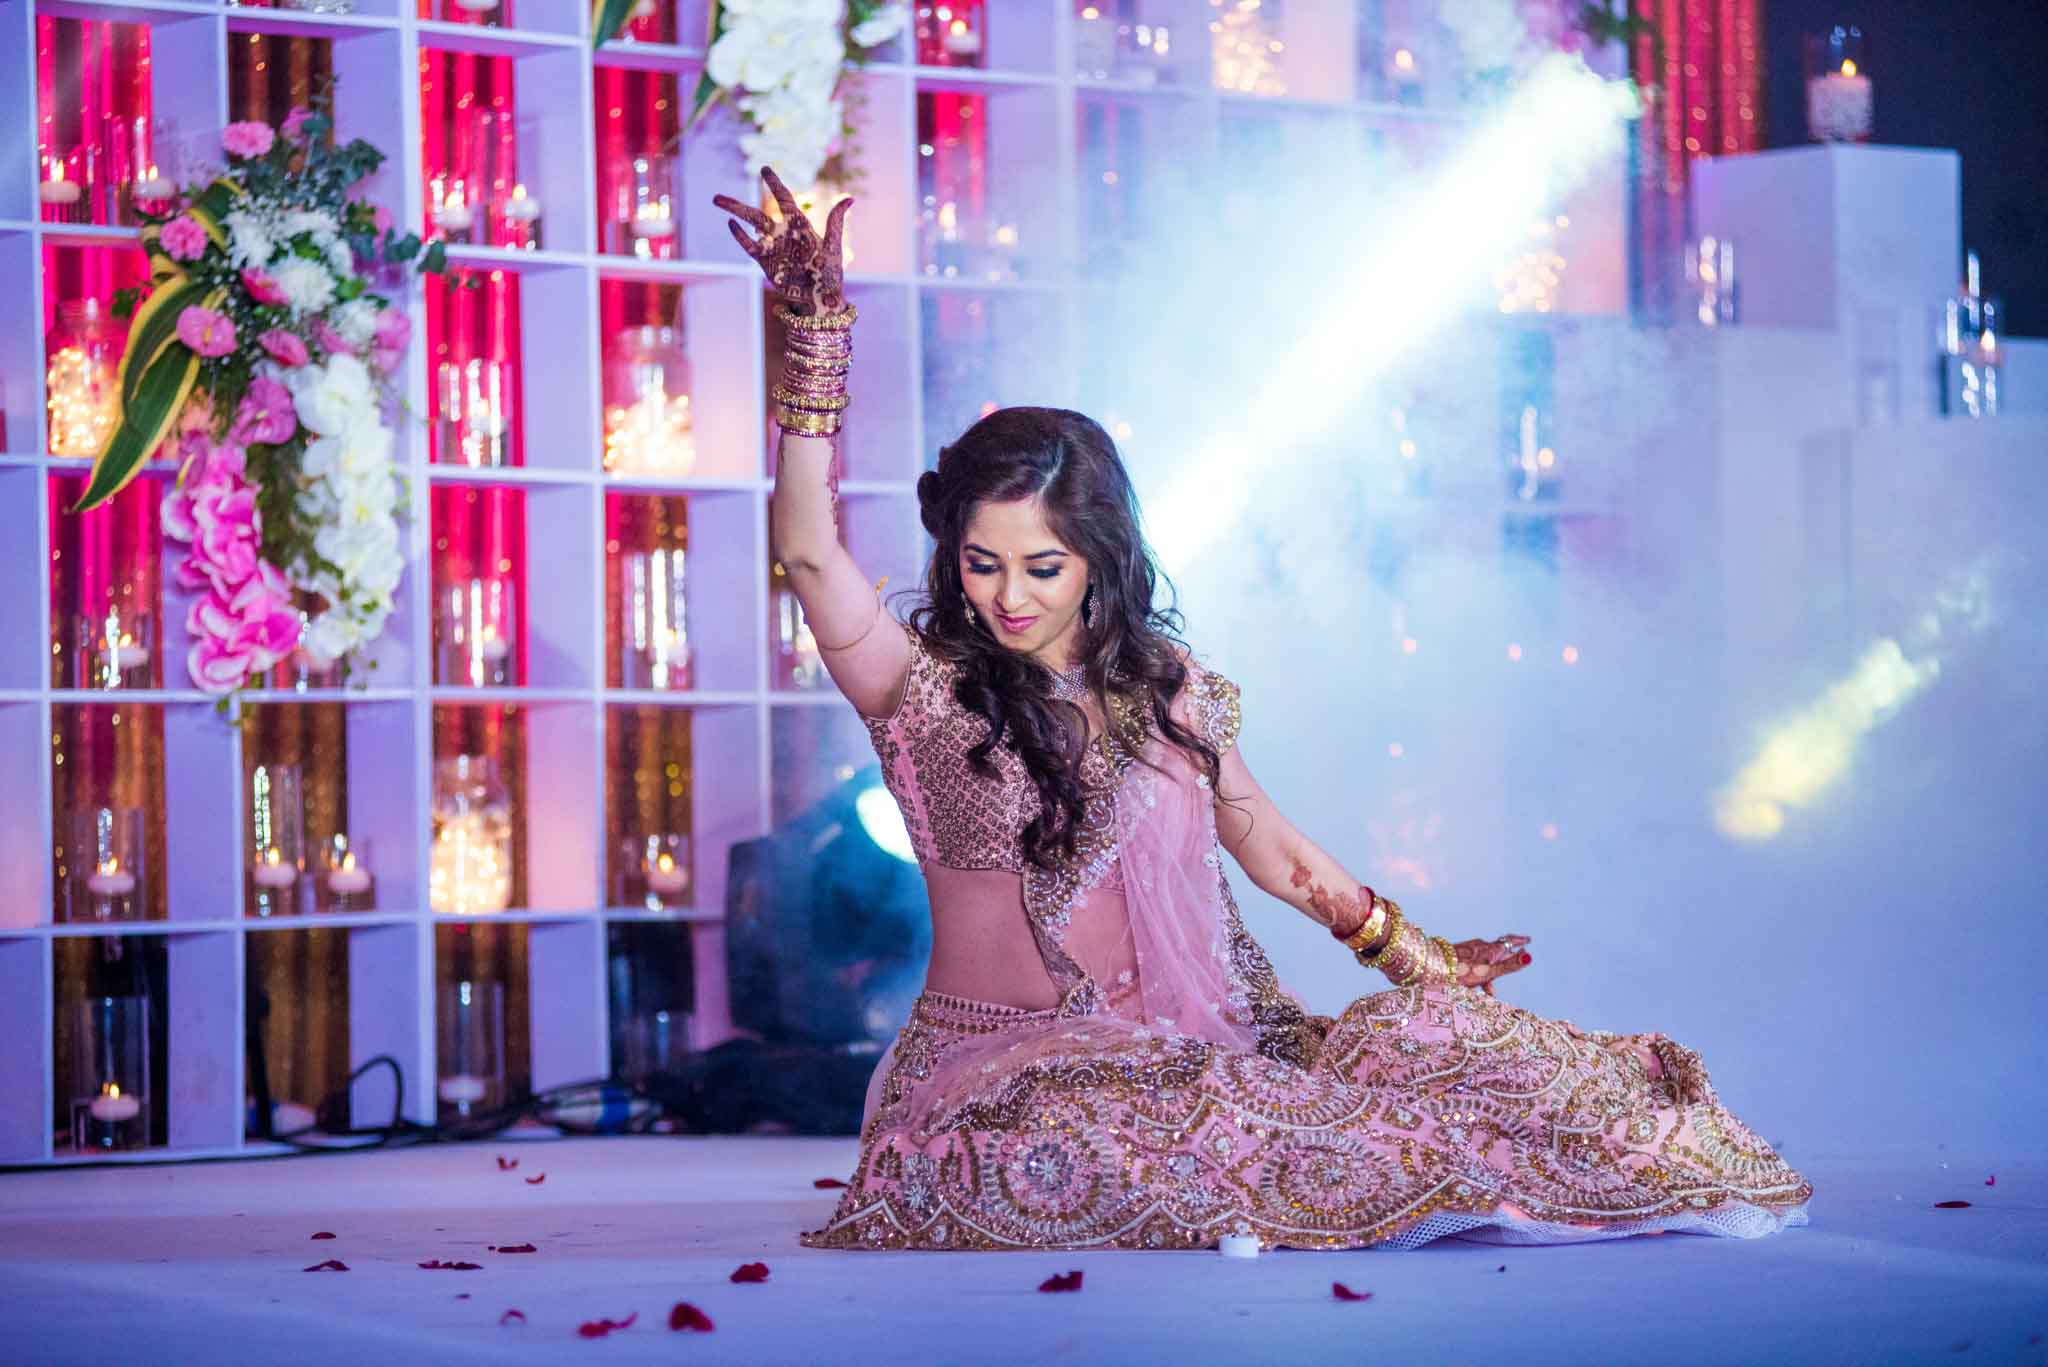 StRegis-Palladium-Mumbai-Candid-Wedding-Photography-65